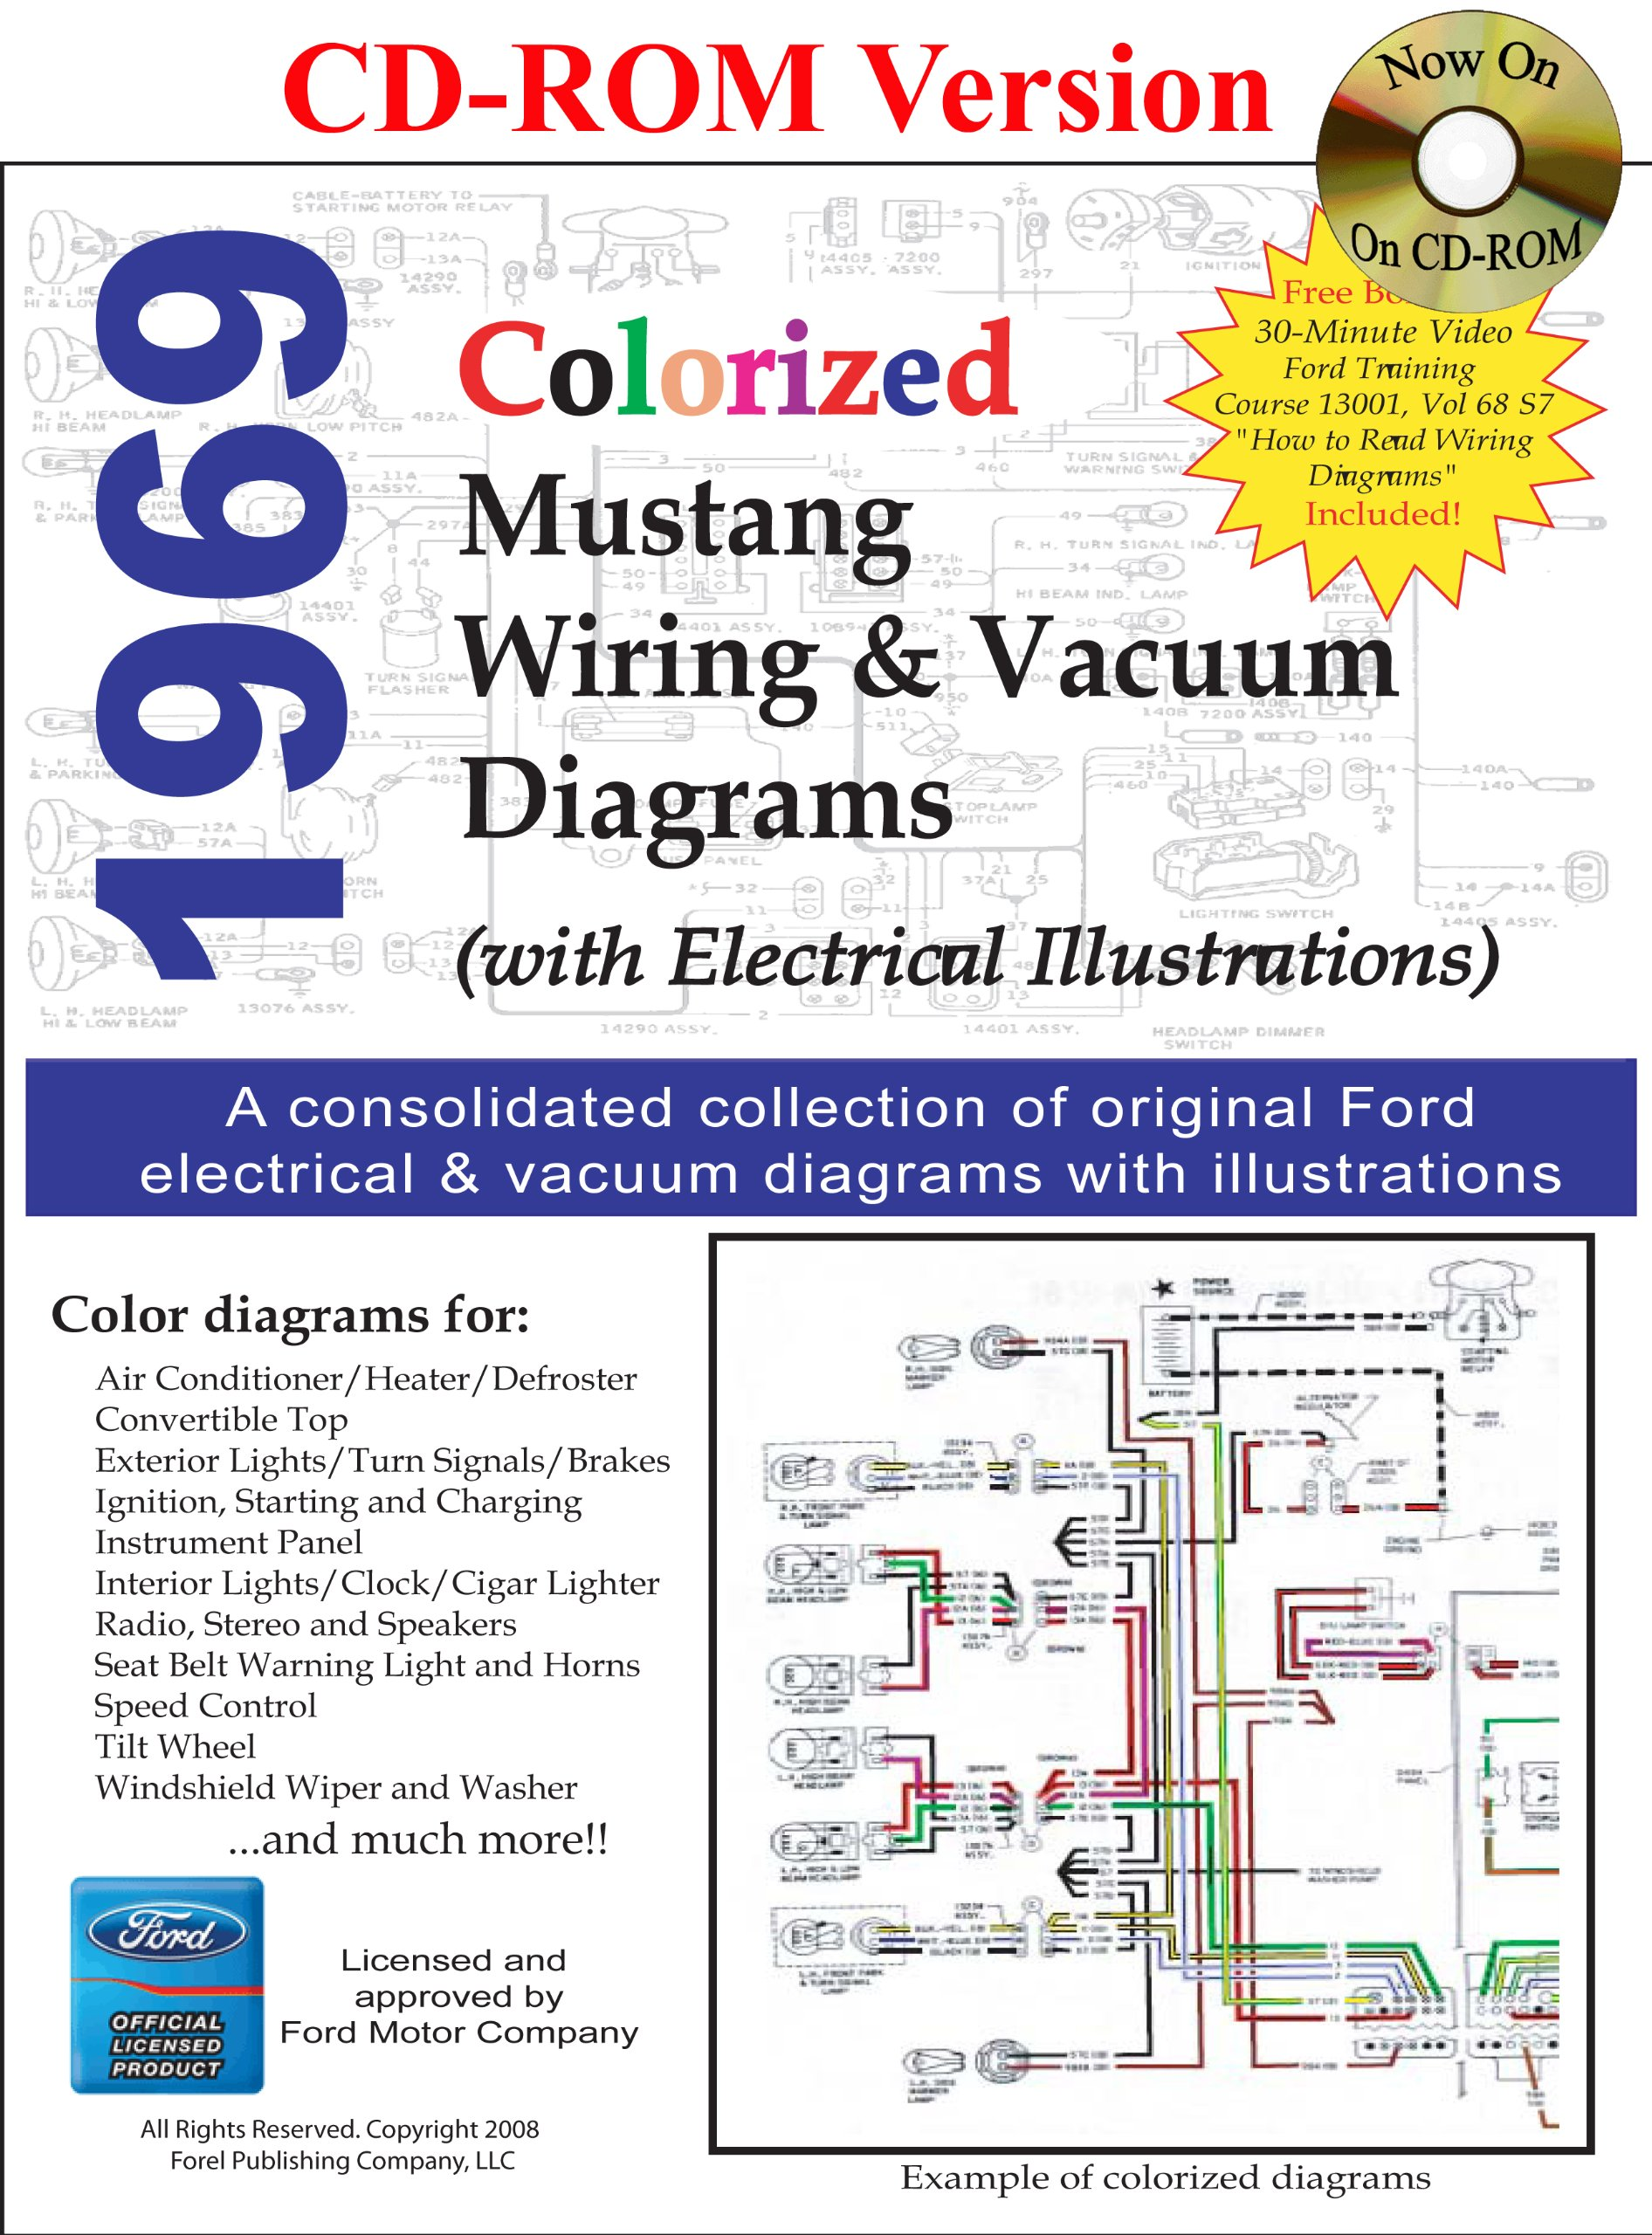 1969 Colorized Mustang Wiring Vacuum Diagrams David E Leblanc Control Panel Diagram Get Free Image About 9781603710282 Books